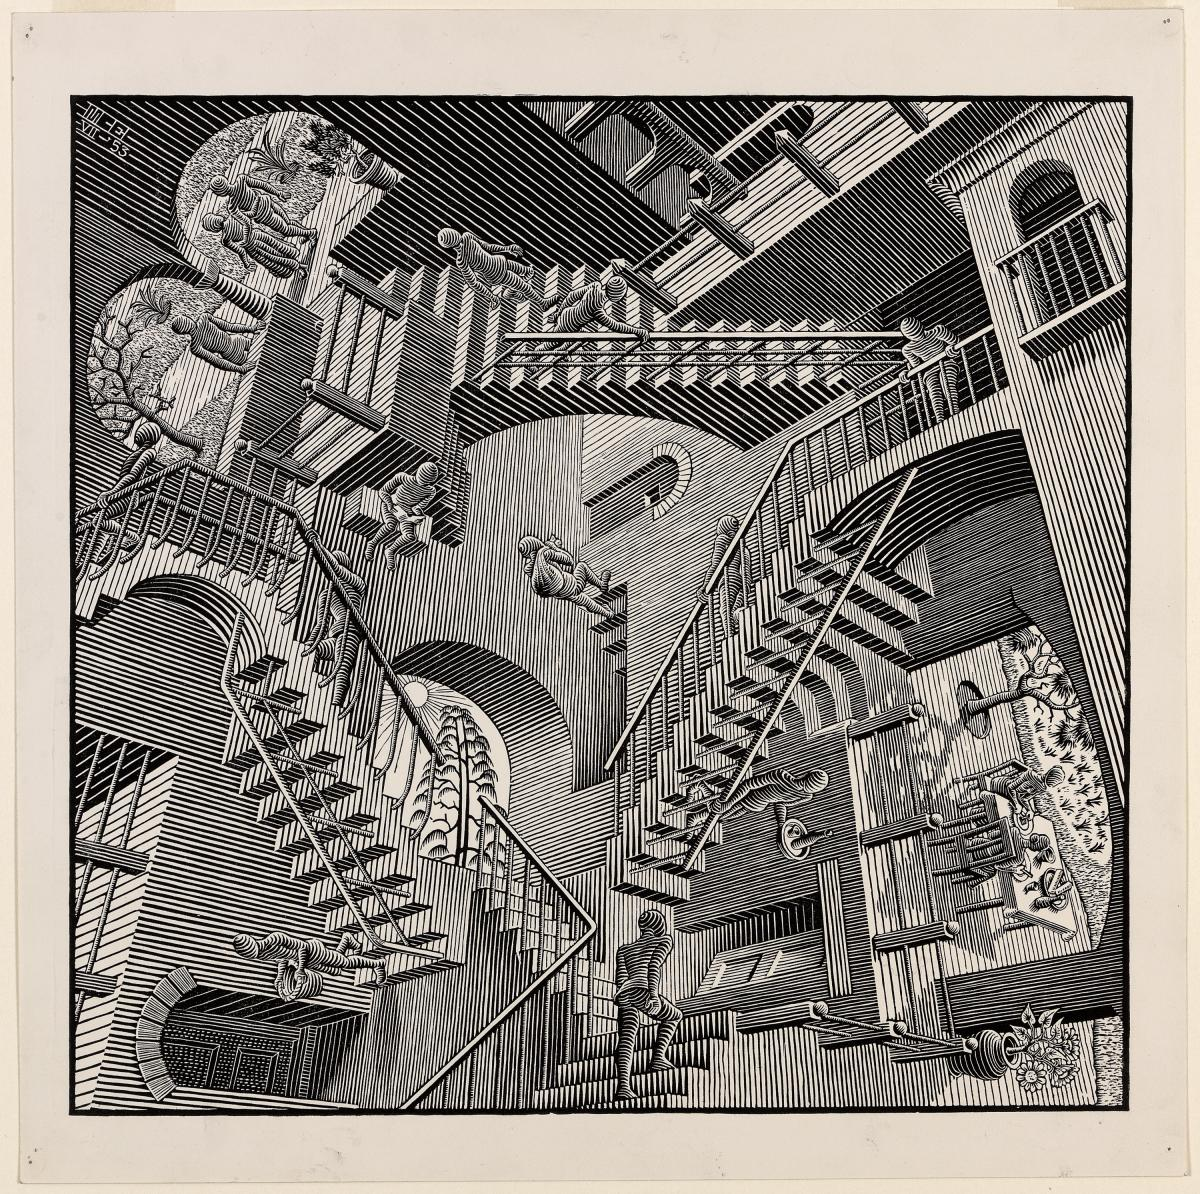 Exhibition Between Two Worlds | Escher X nendo at NGV